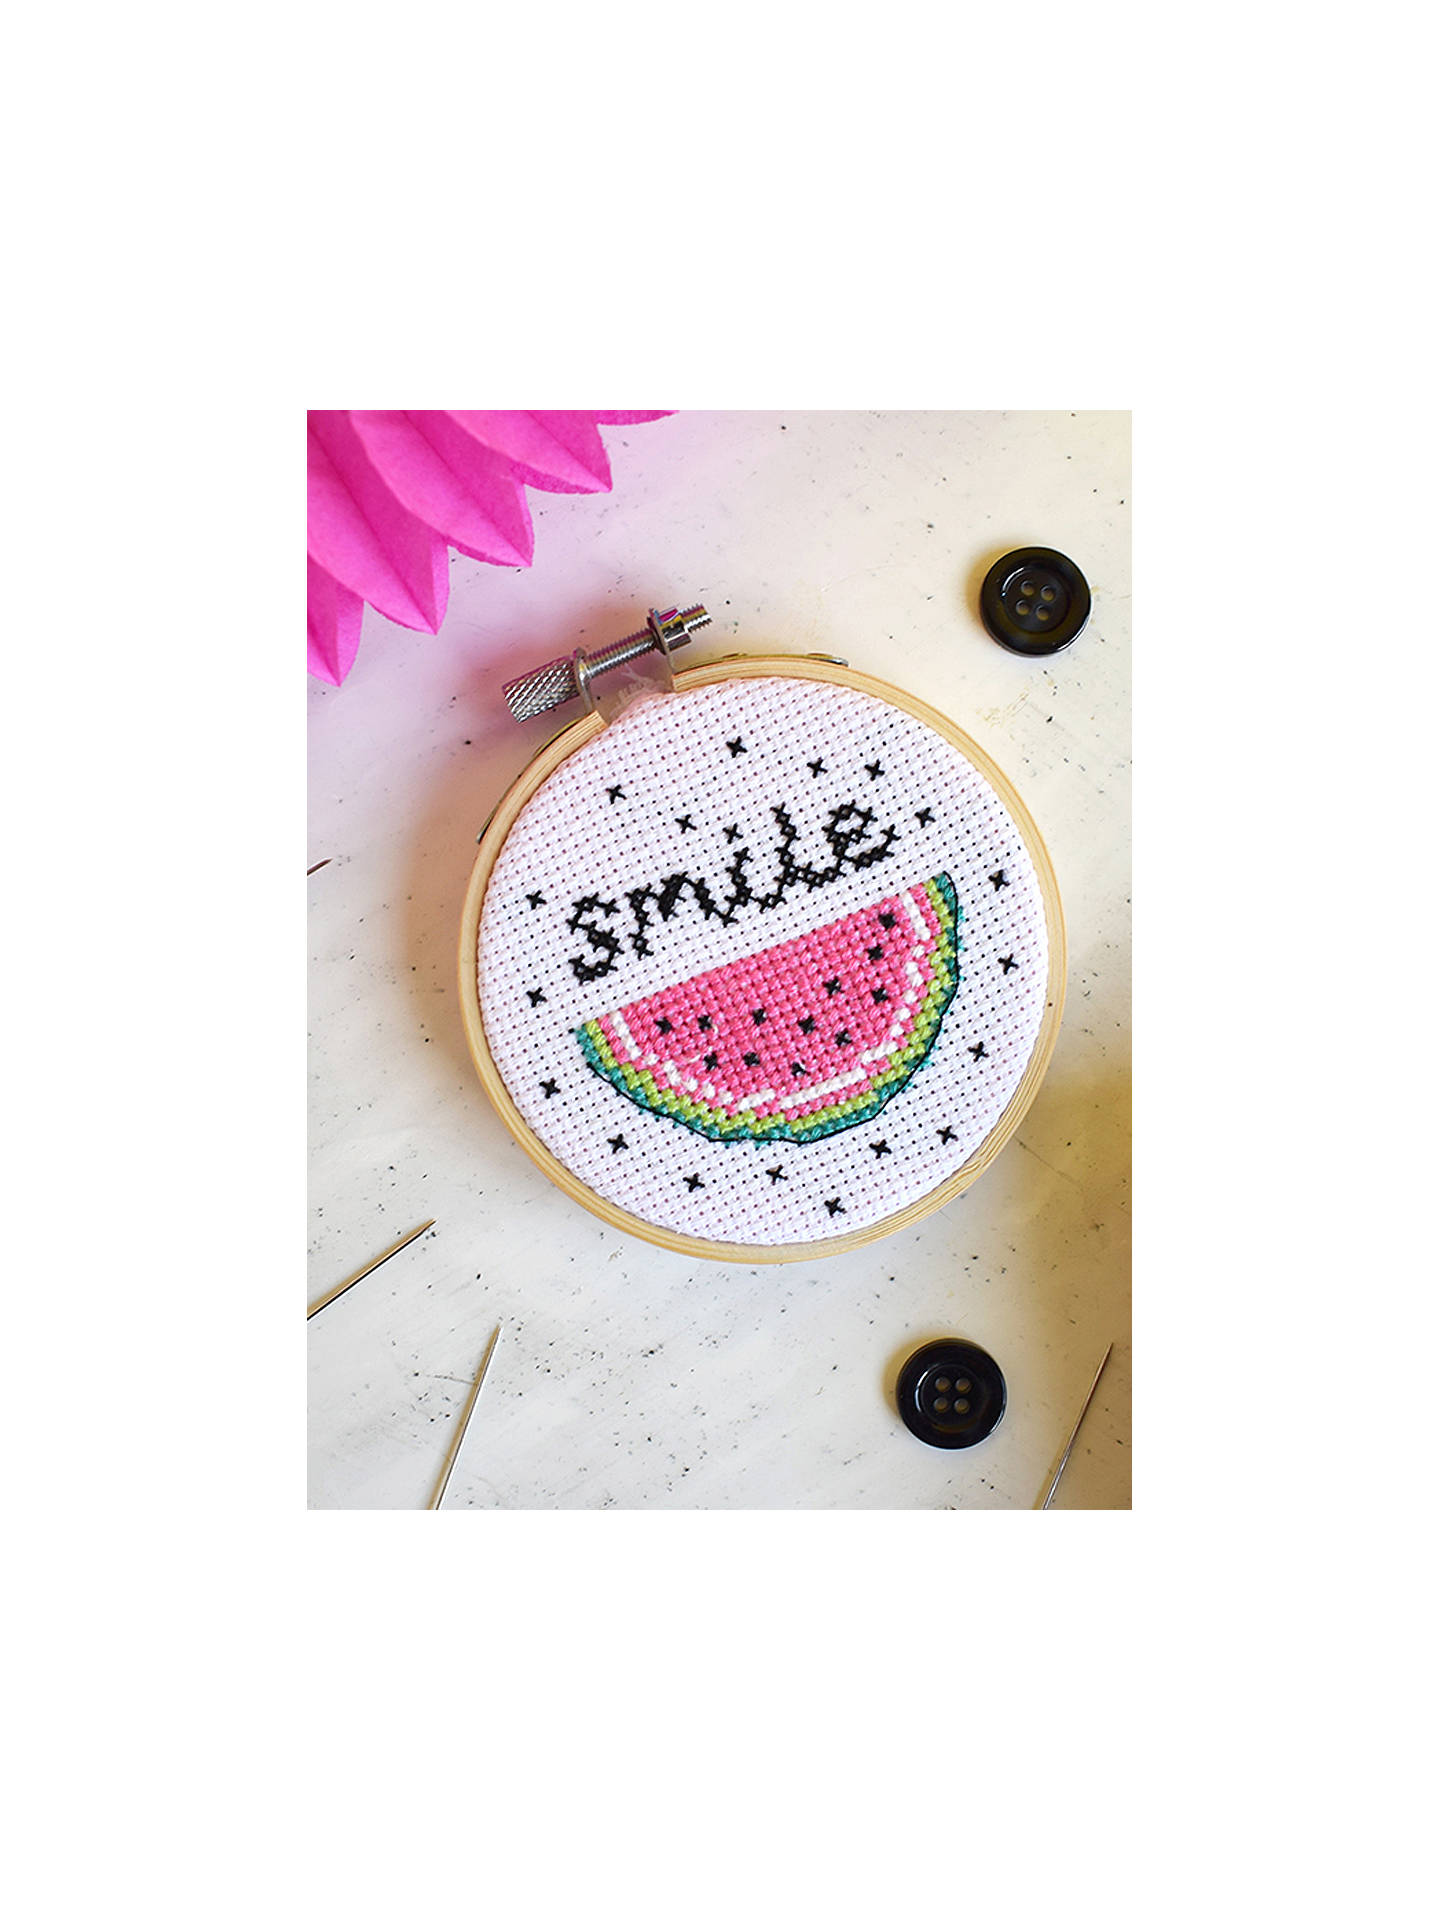 BuyThe Make Arcade Mini Watermelon Cross Stitch Kit Online at johnlewis.com